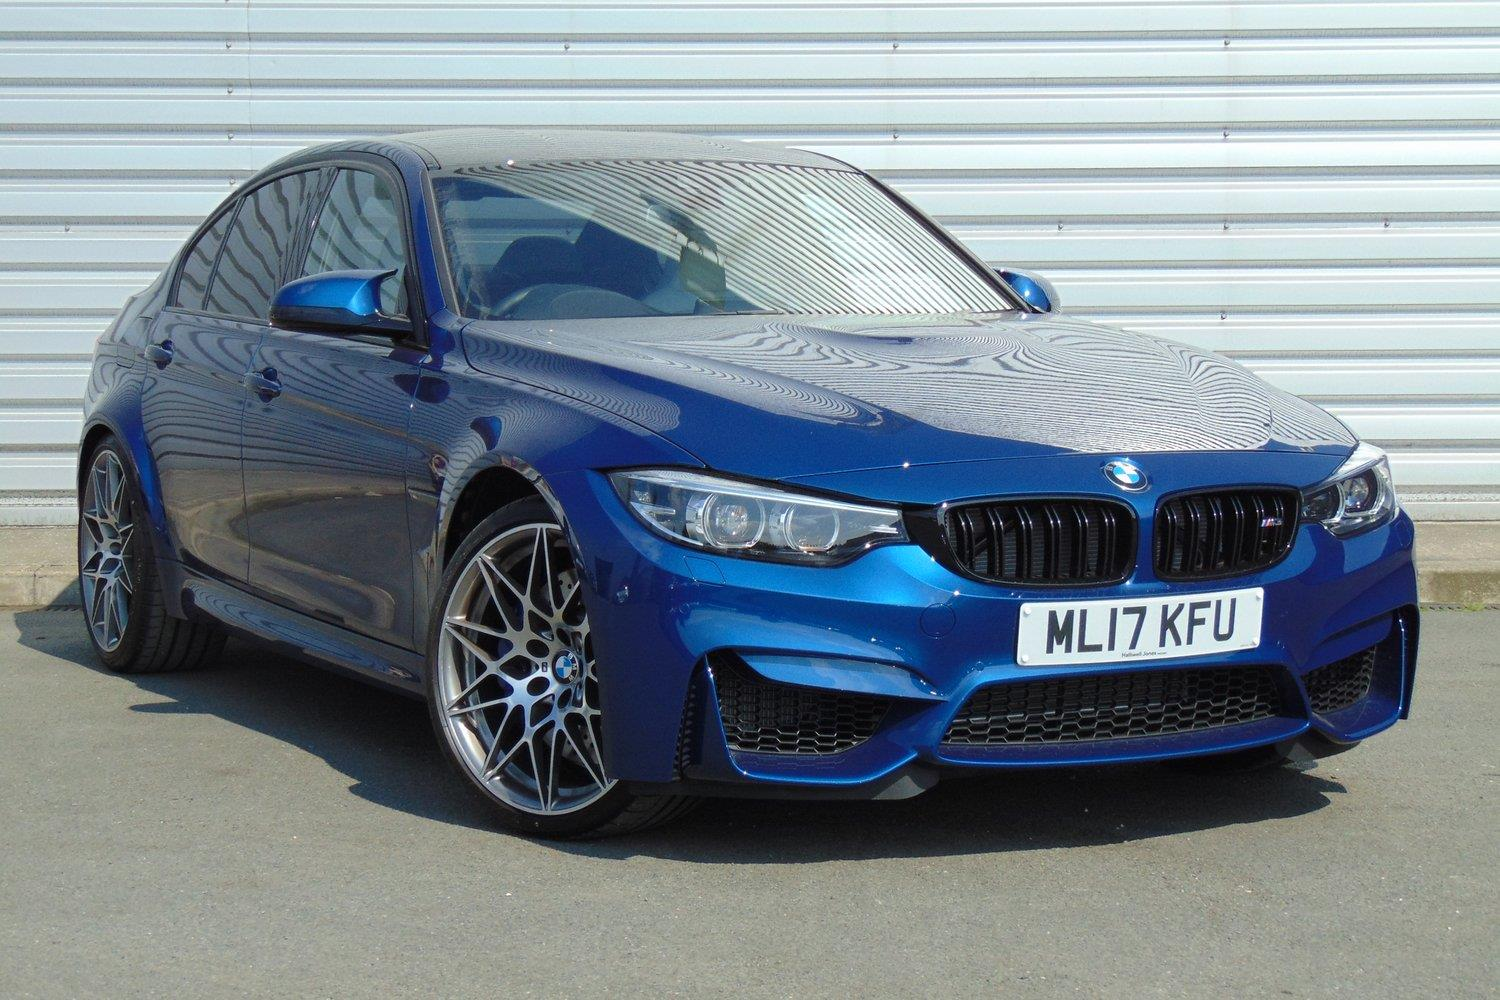 BMW M3 Saloon ML17KFU - Image 7